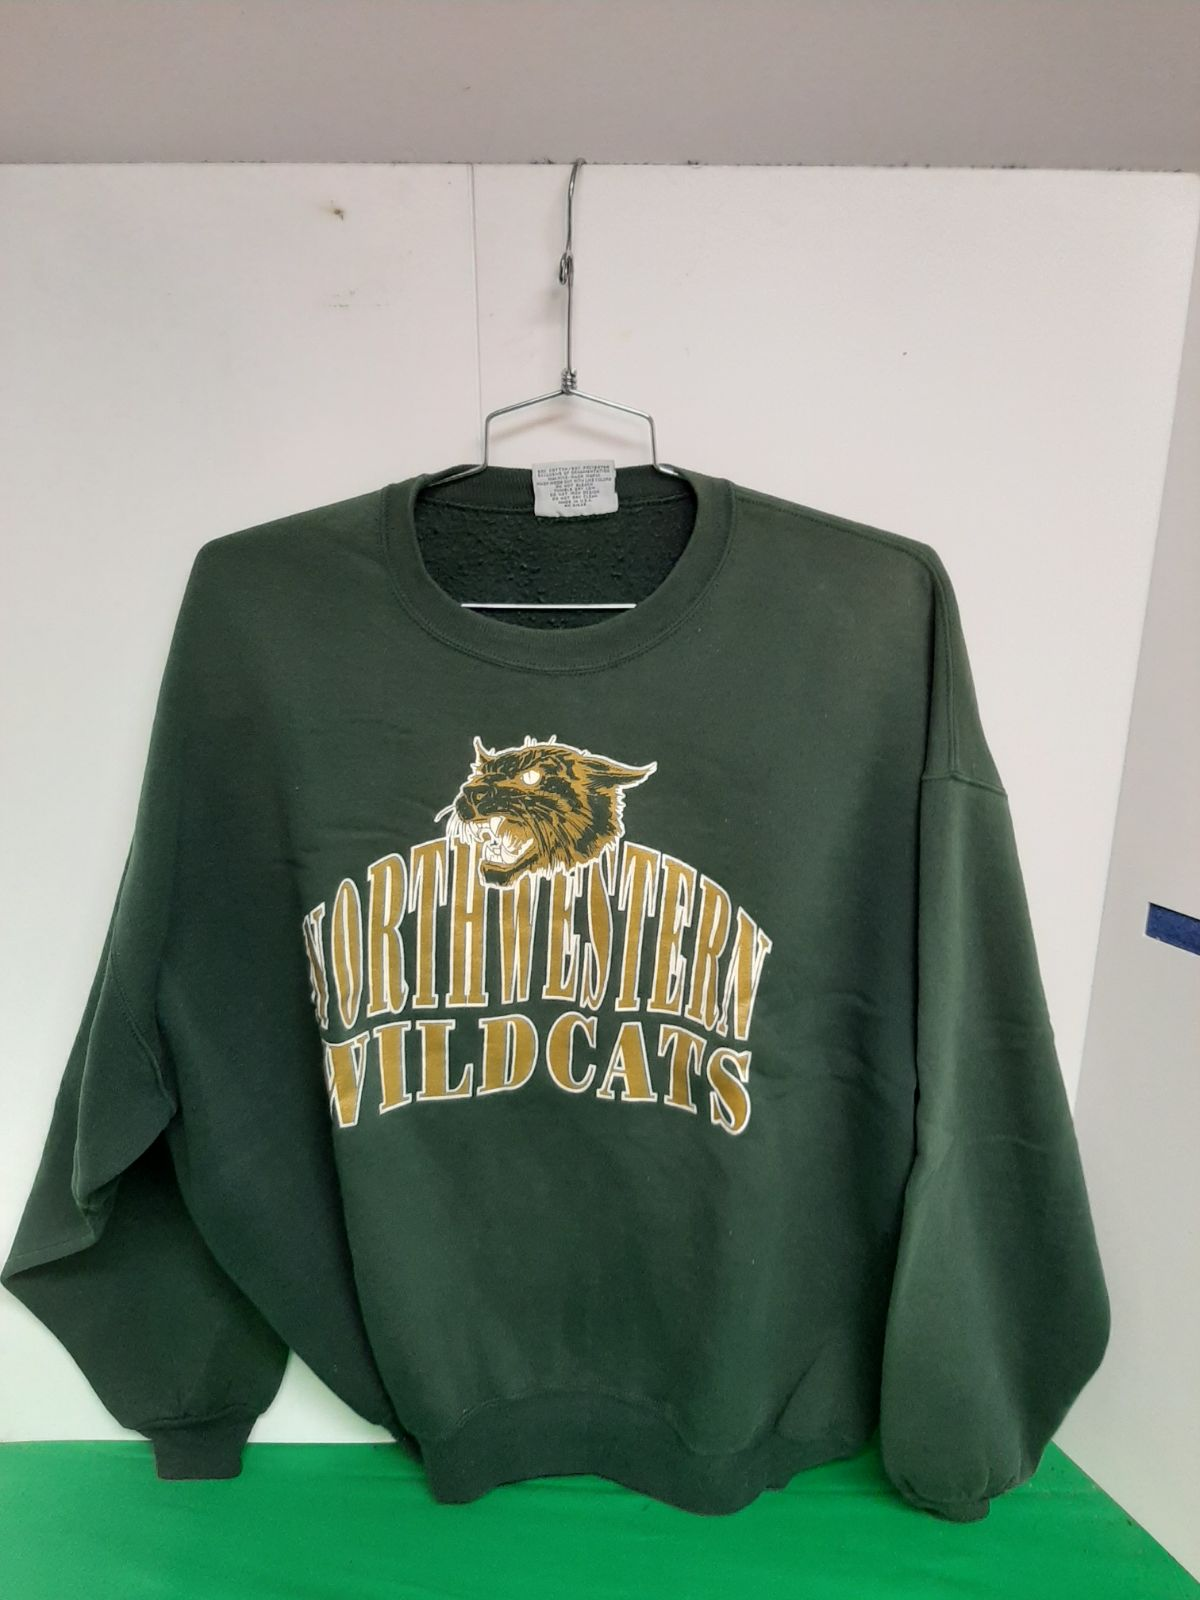 Northwestern Wildcats Sweatshirt  size 2